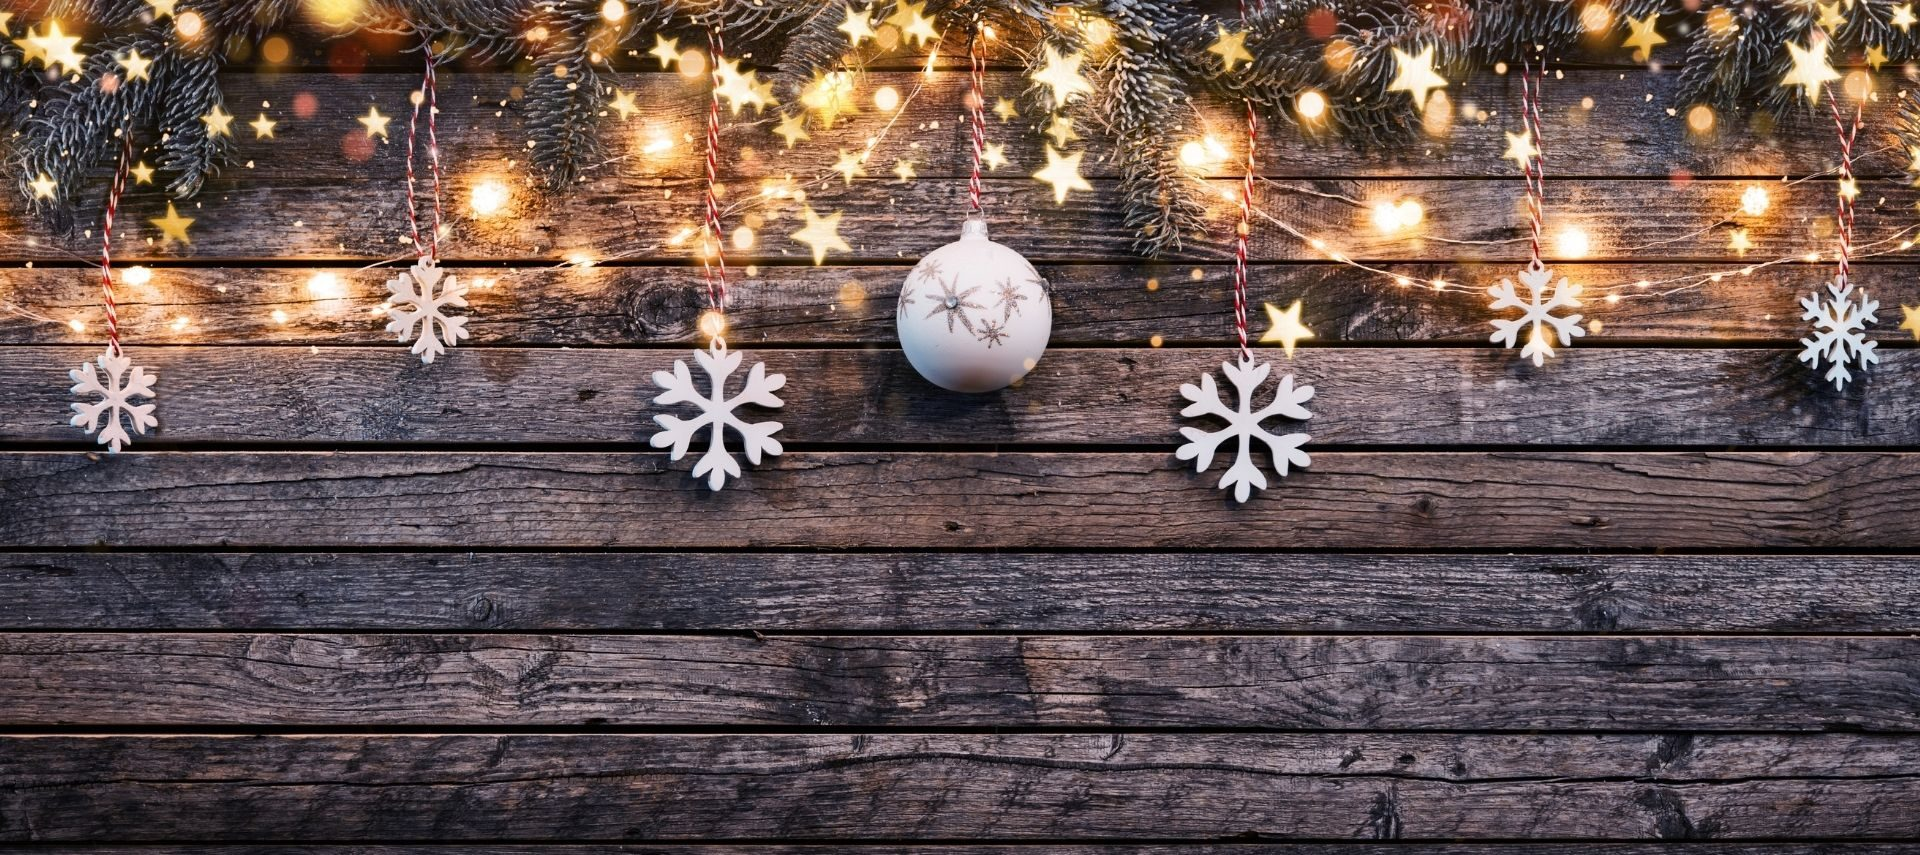 Christmas lights and decorations against a weathered wood backdrop